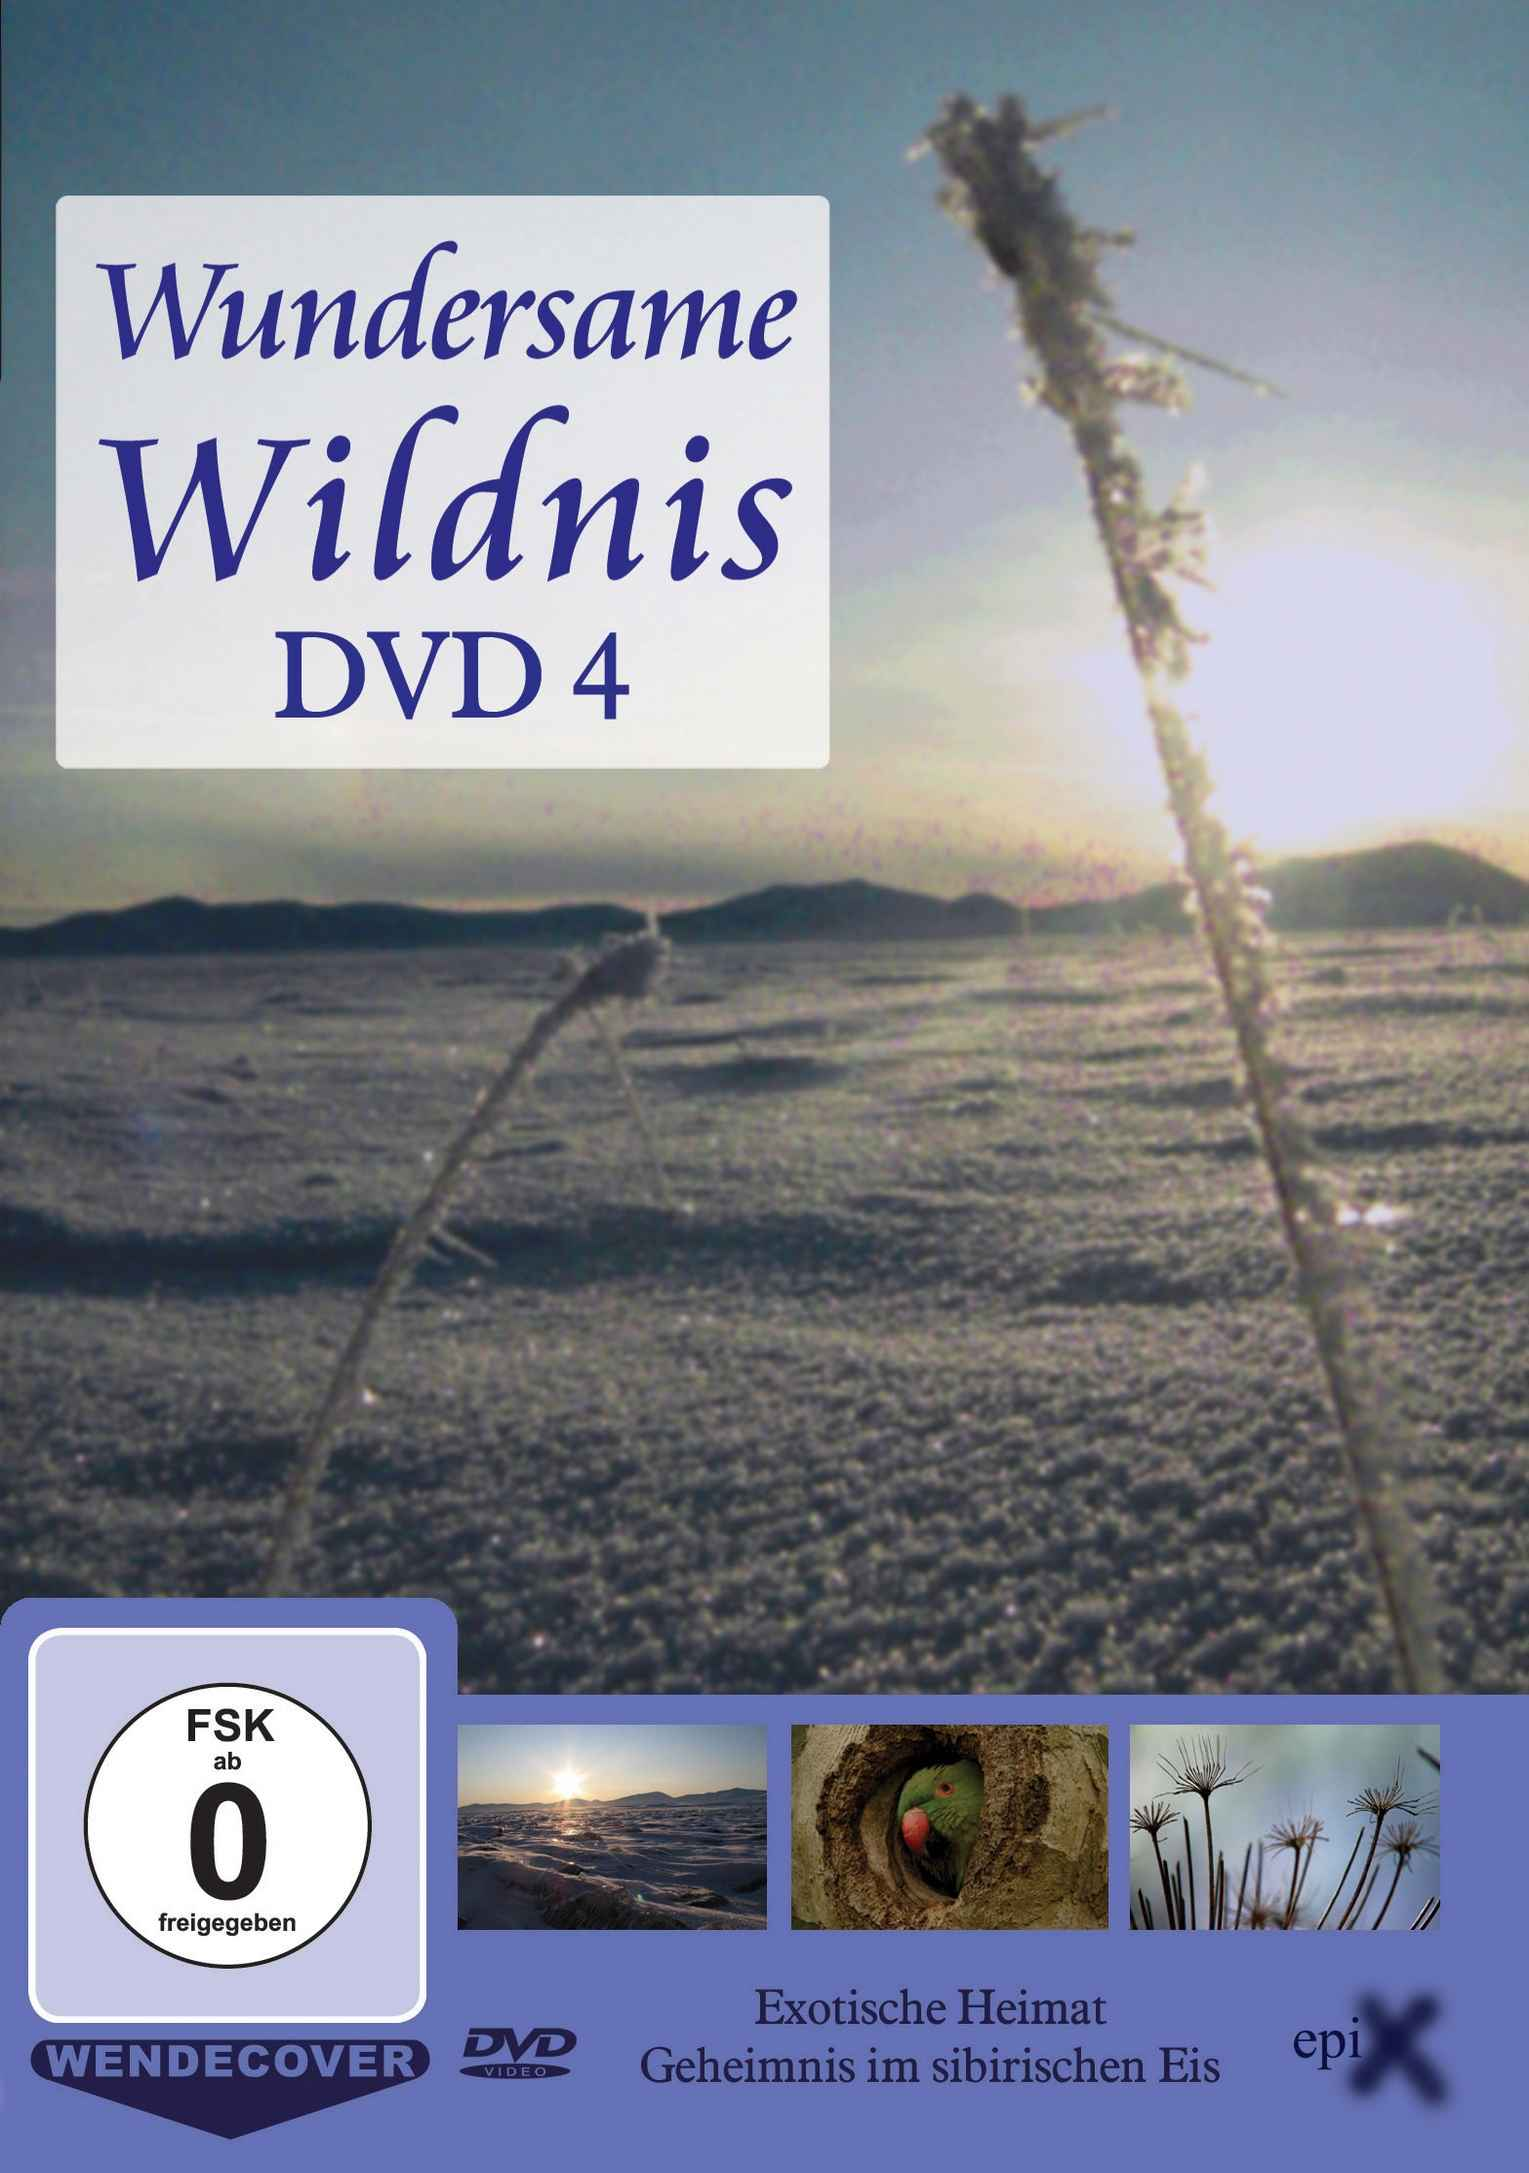 WUNDERSAME WILDNIS DVD 4 Front FINAL